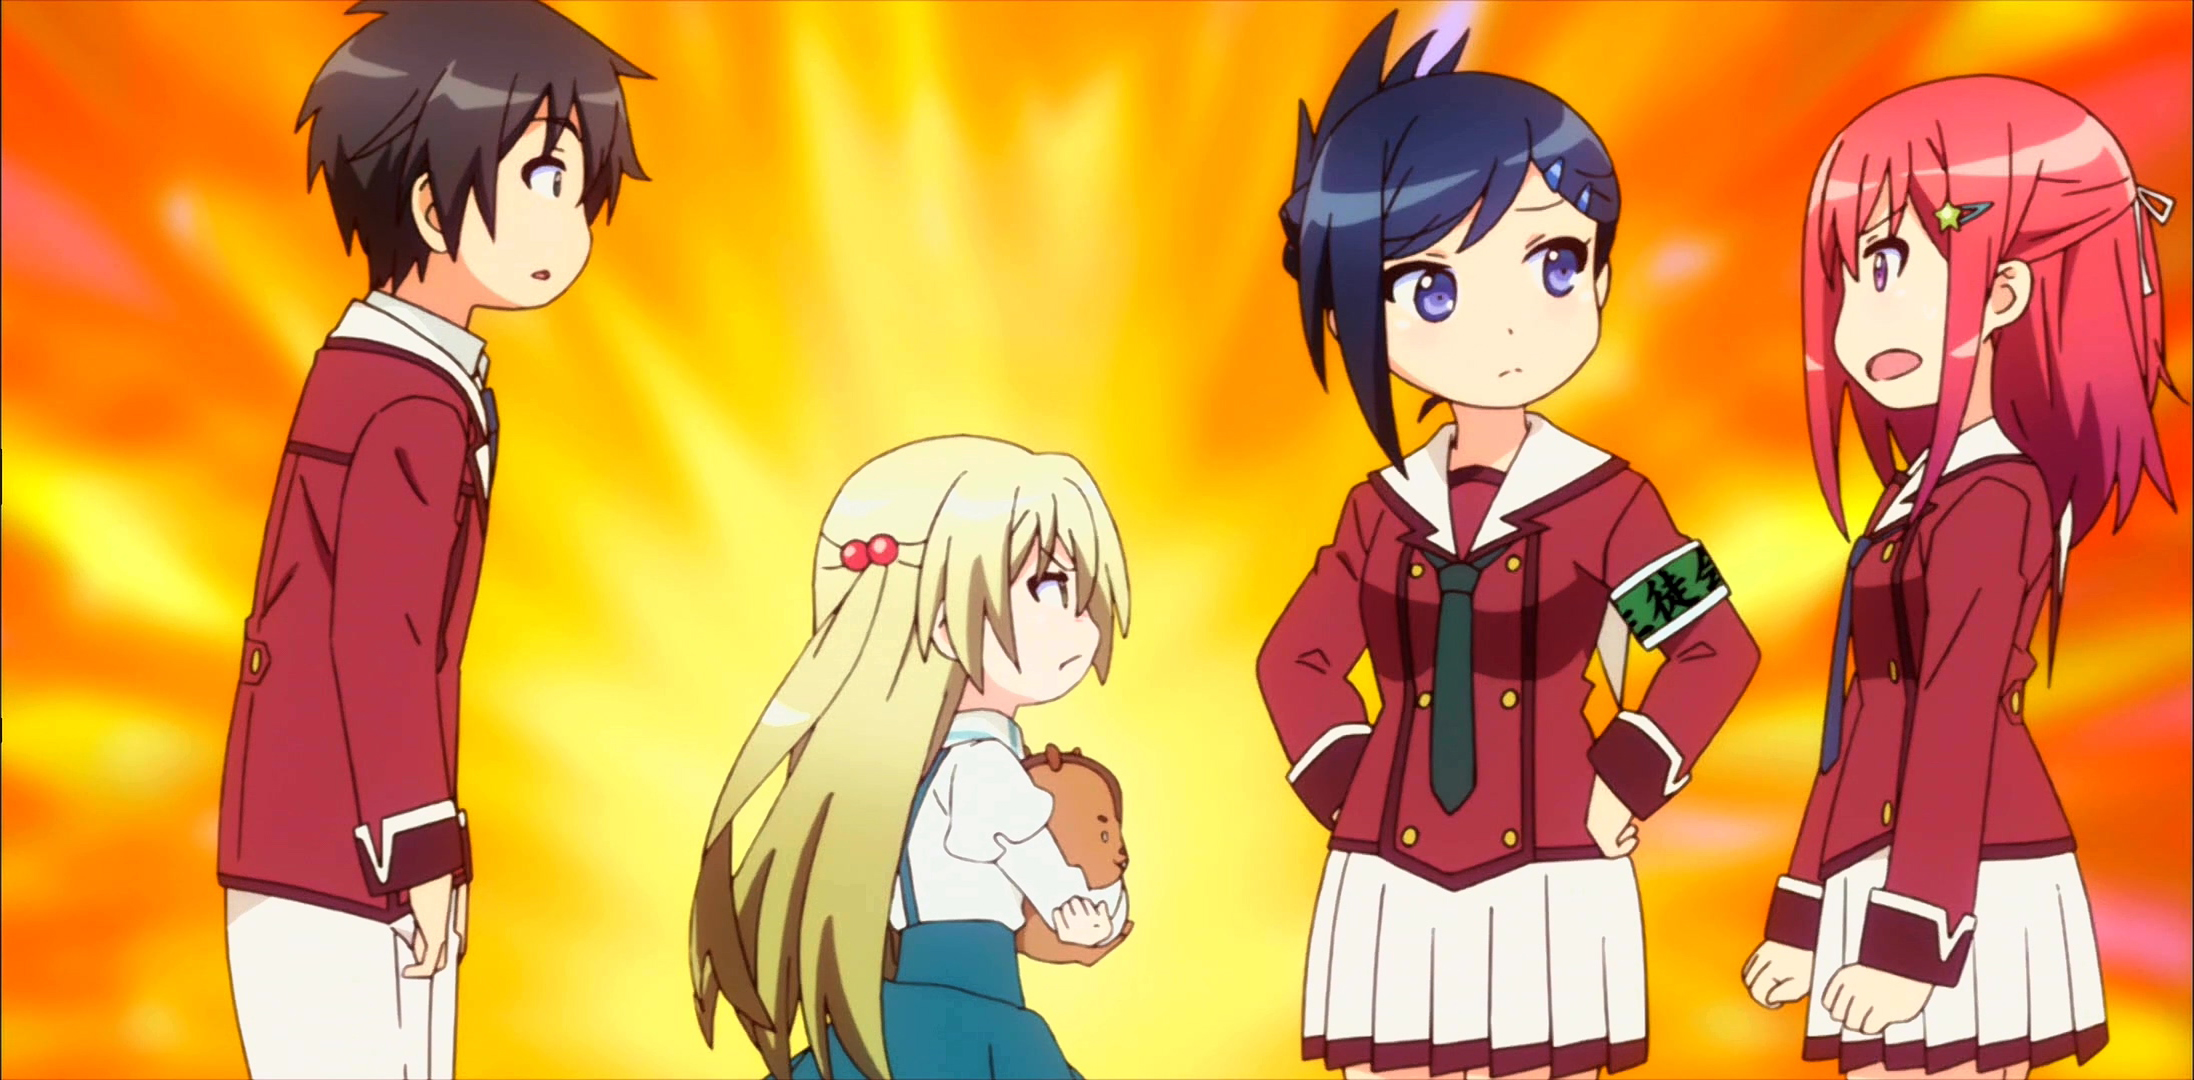 [HorribleSubs] Inou Battle wa Nichijou-kei no Naka de - 02 [1080p].mkv_20141019_005120.296.jpg